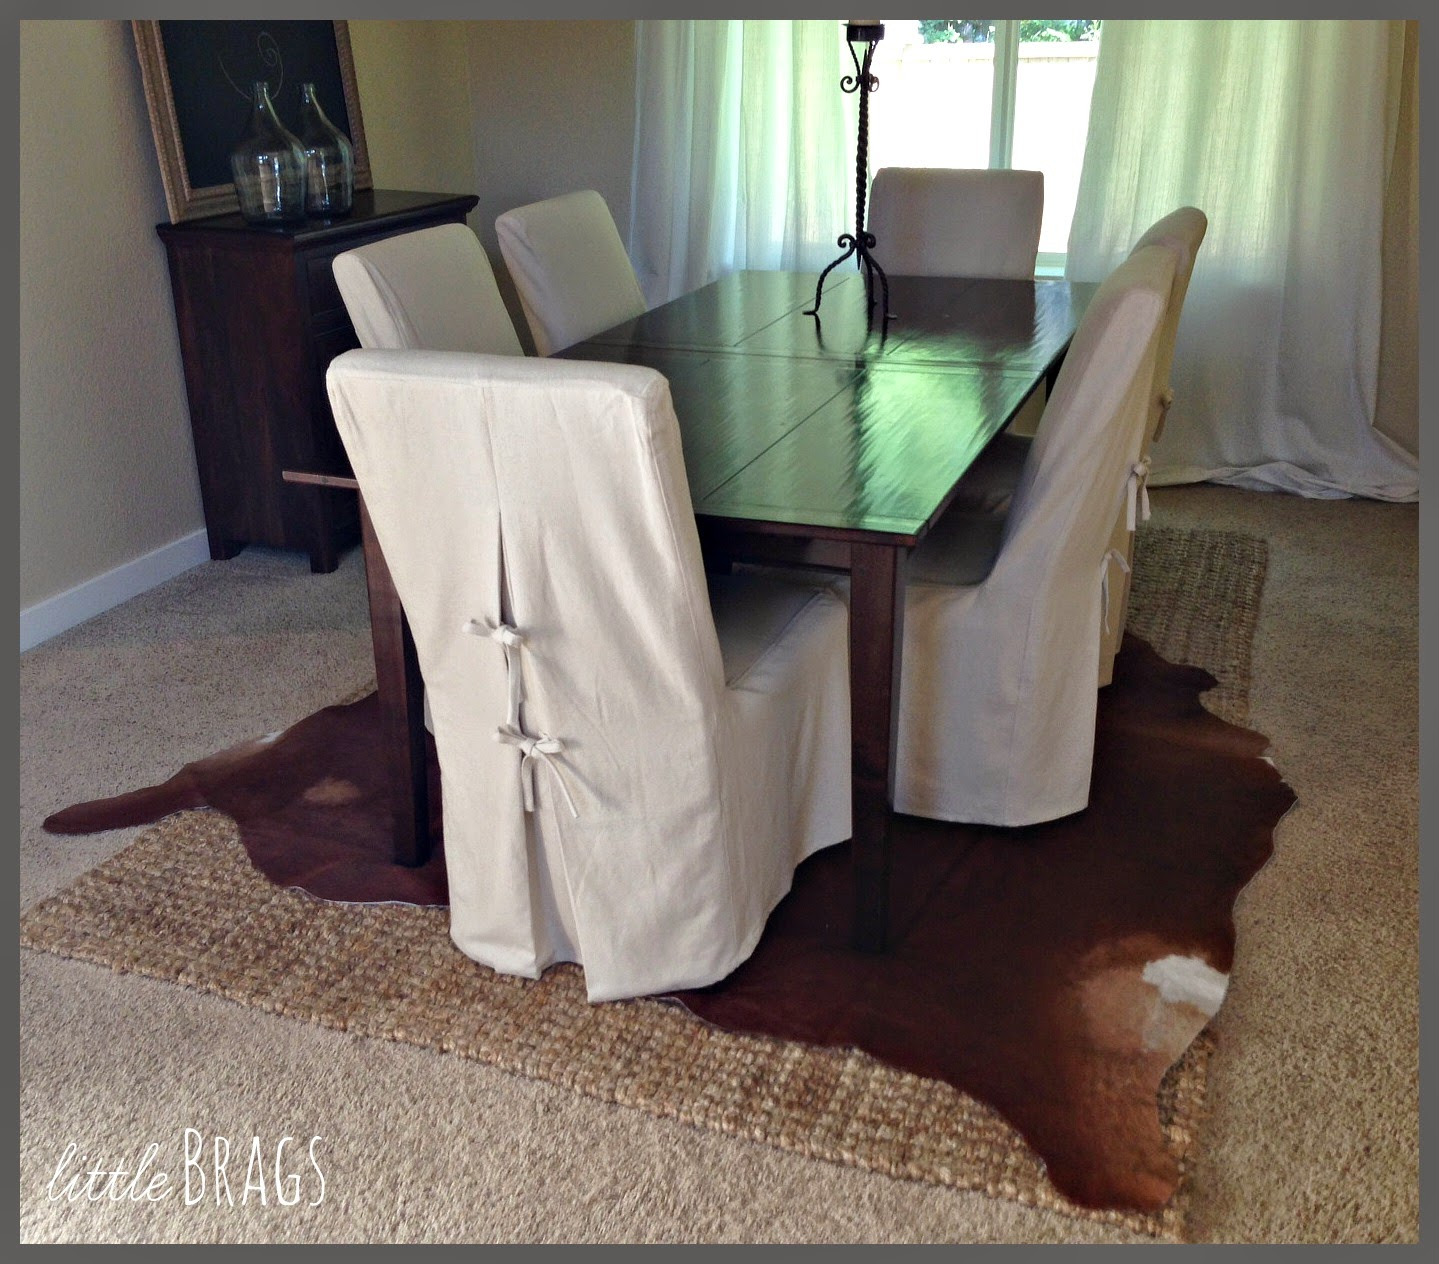 Little Brags My First Cowhide Rug - Cowhide rug dining room